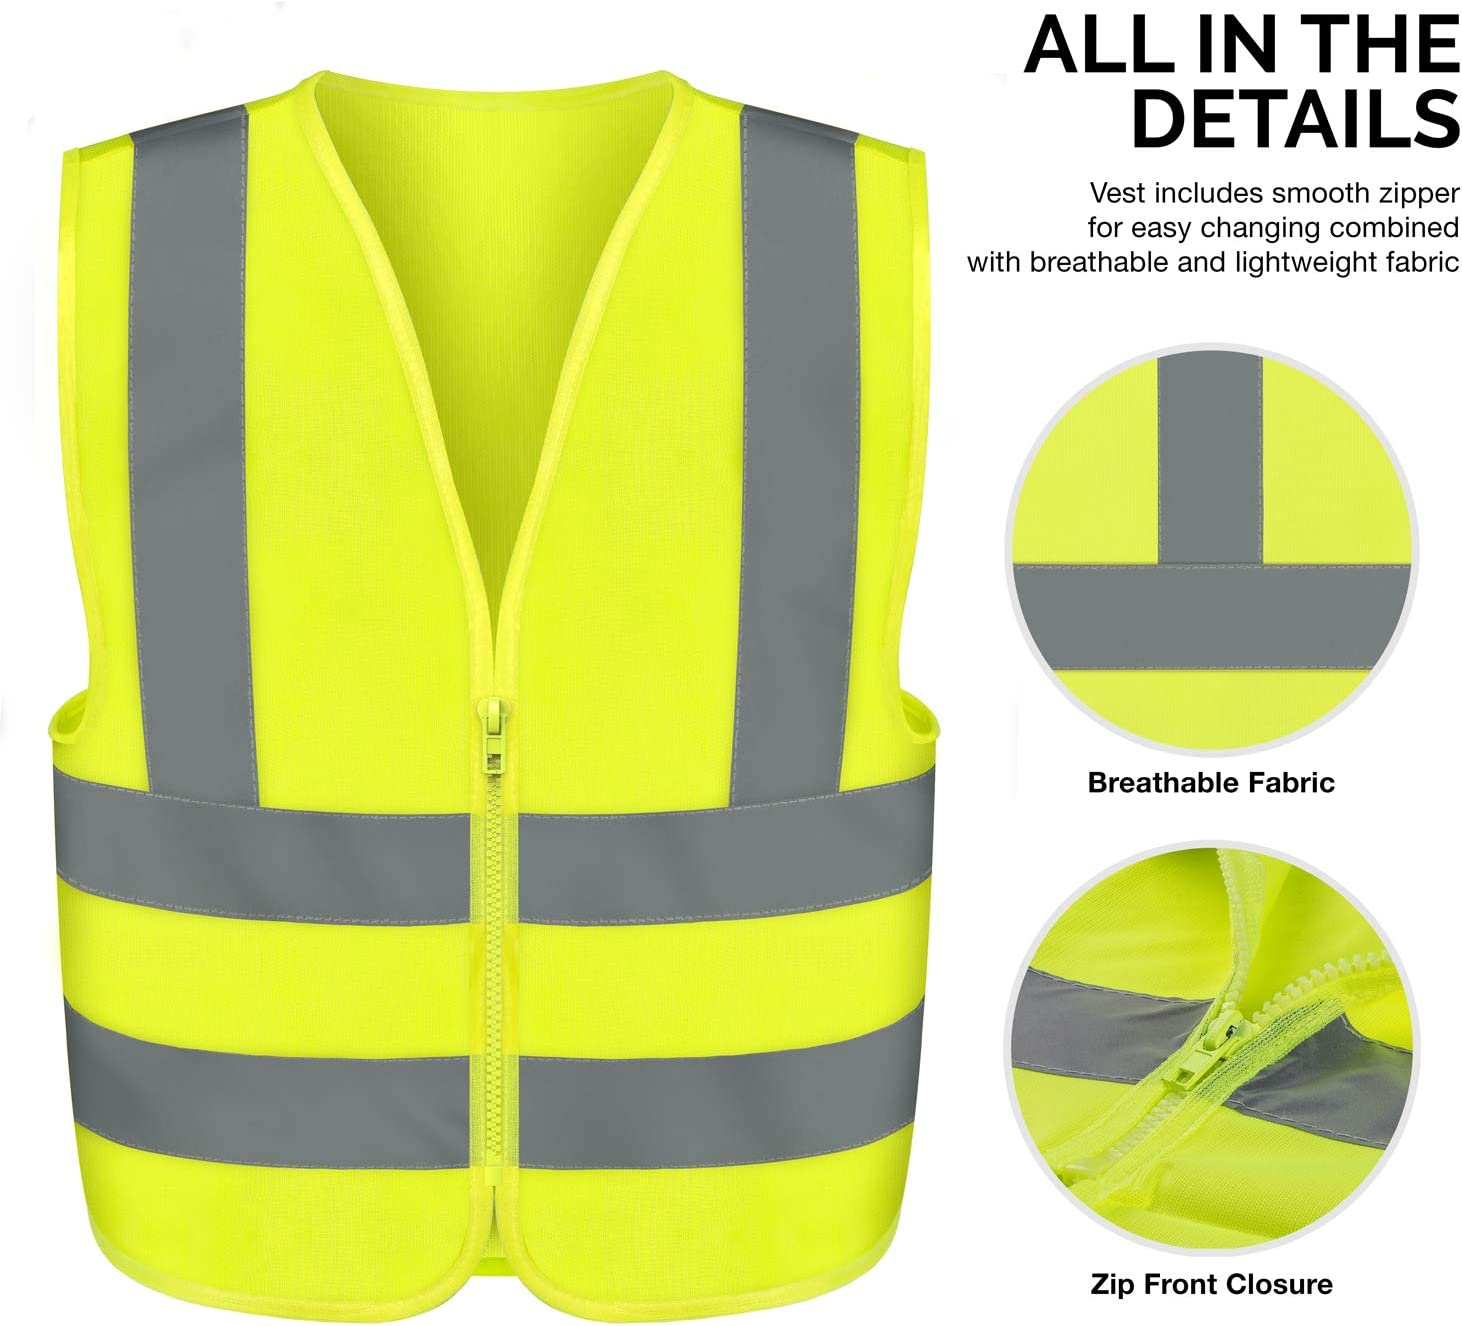 Neiko 53940A High Visibility Safety Vest, Medium, Neon Yellow - Reflective Safety Vest -